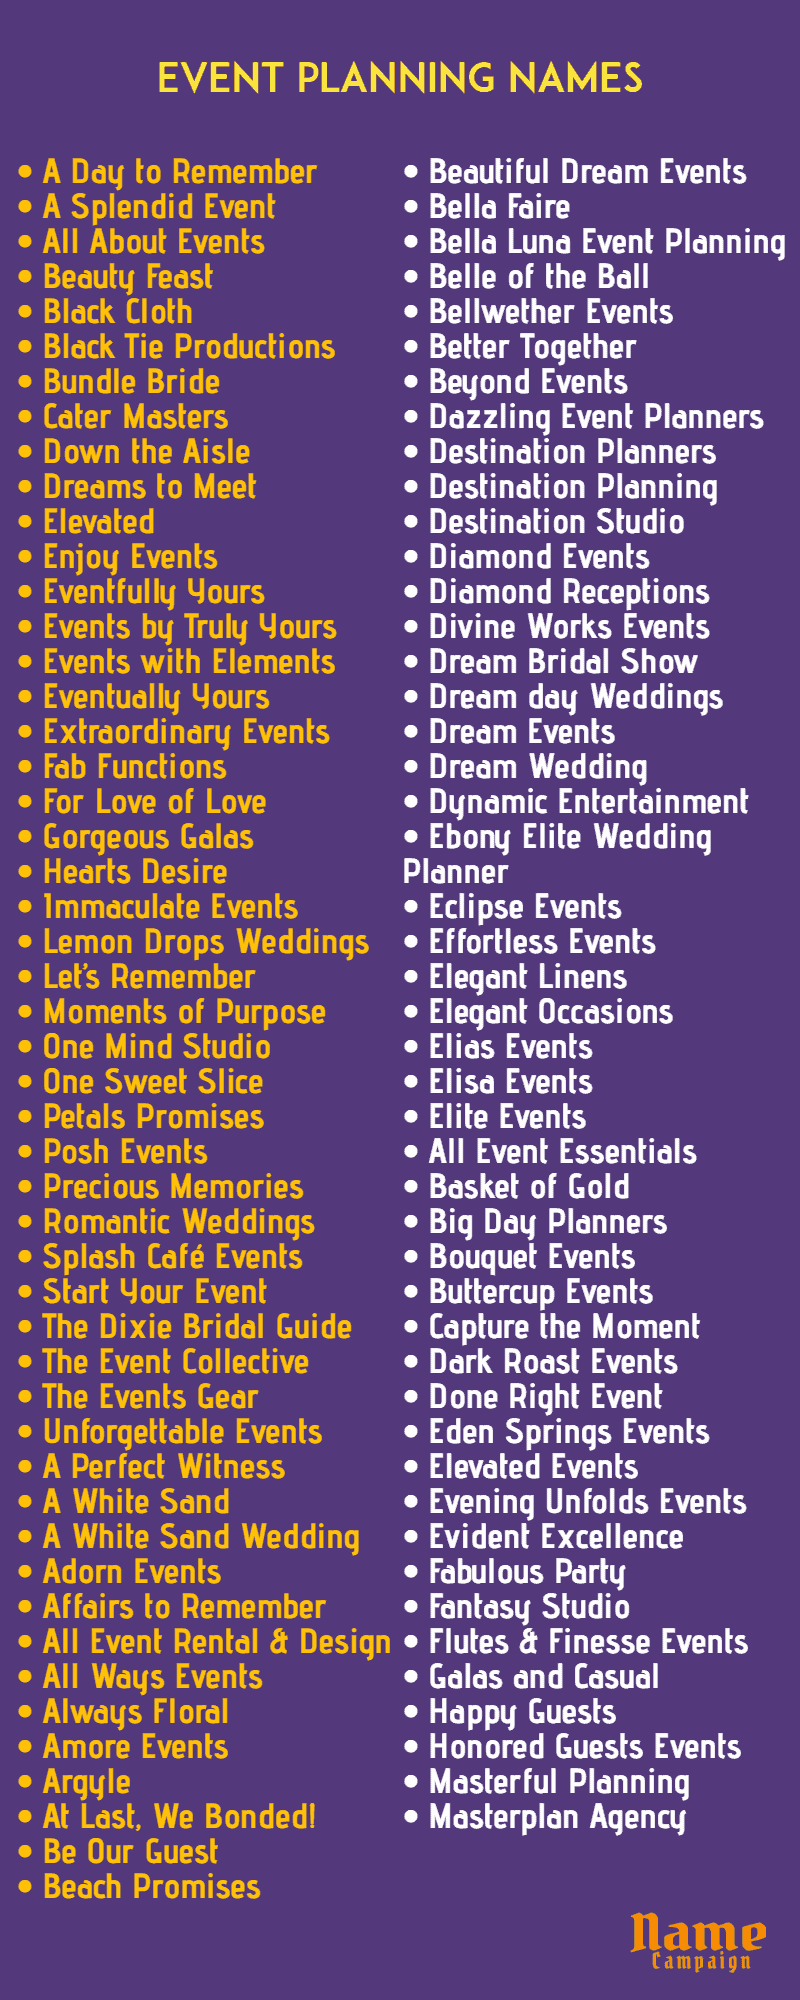 event names: event planning business names